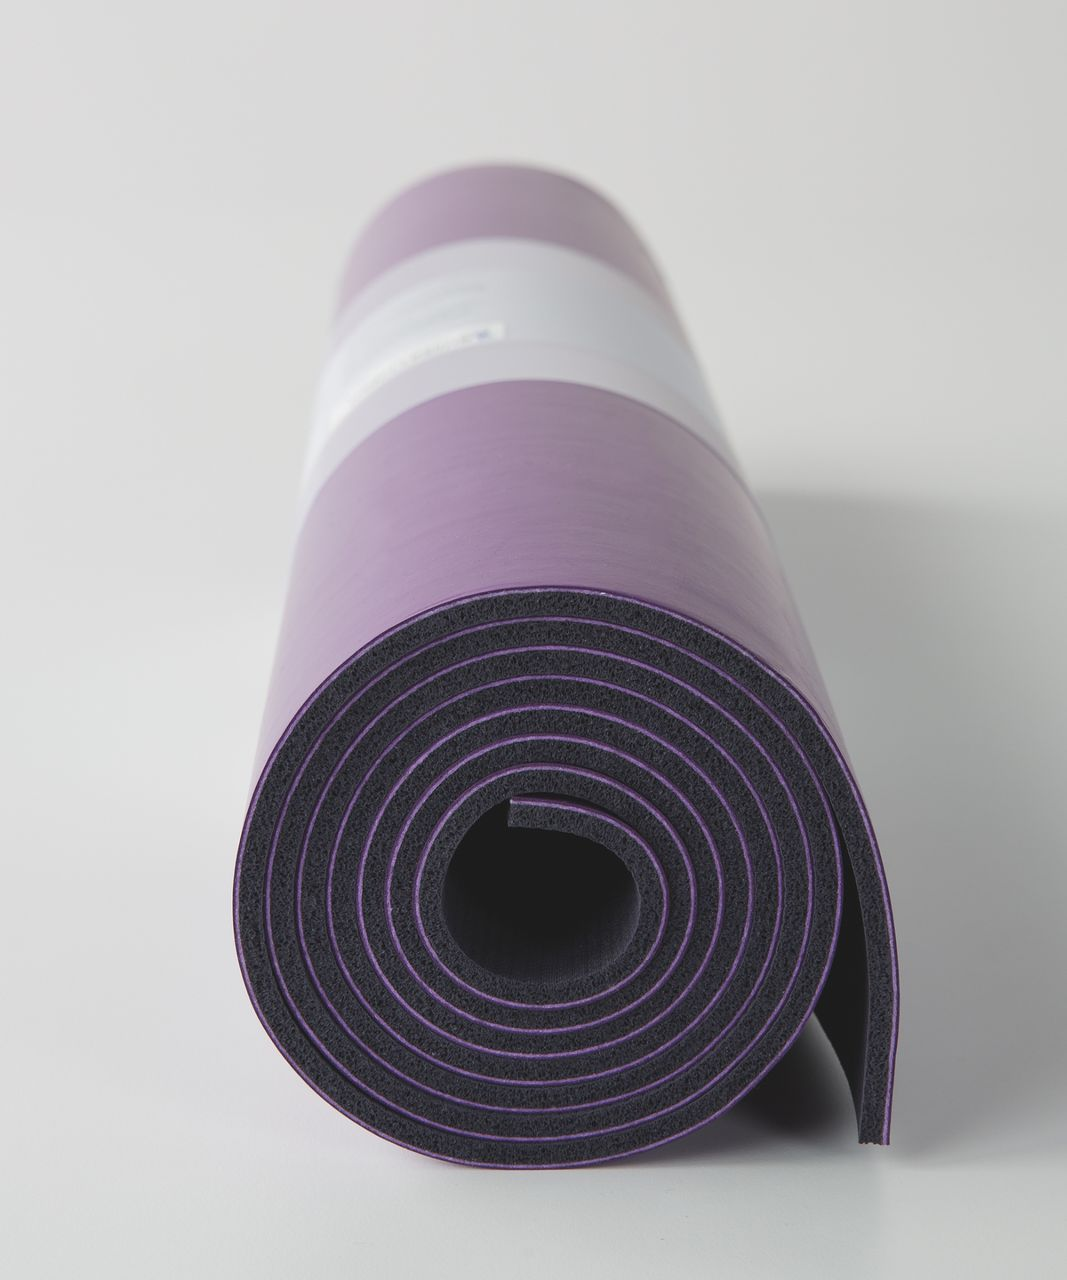 Lululemon The Reversible Mat 5mm - Tender Violet / Black Grape